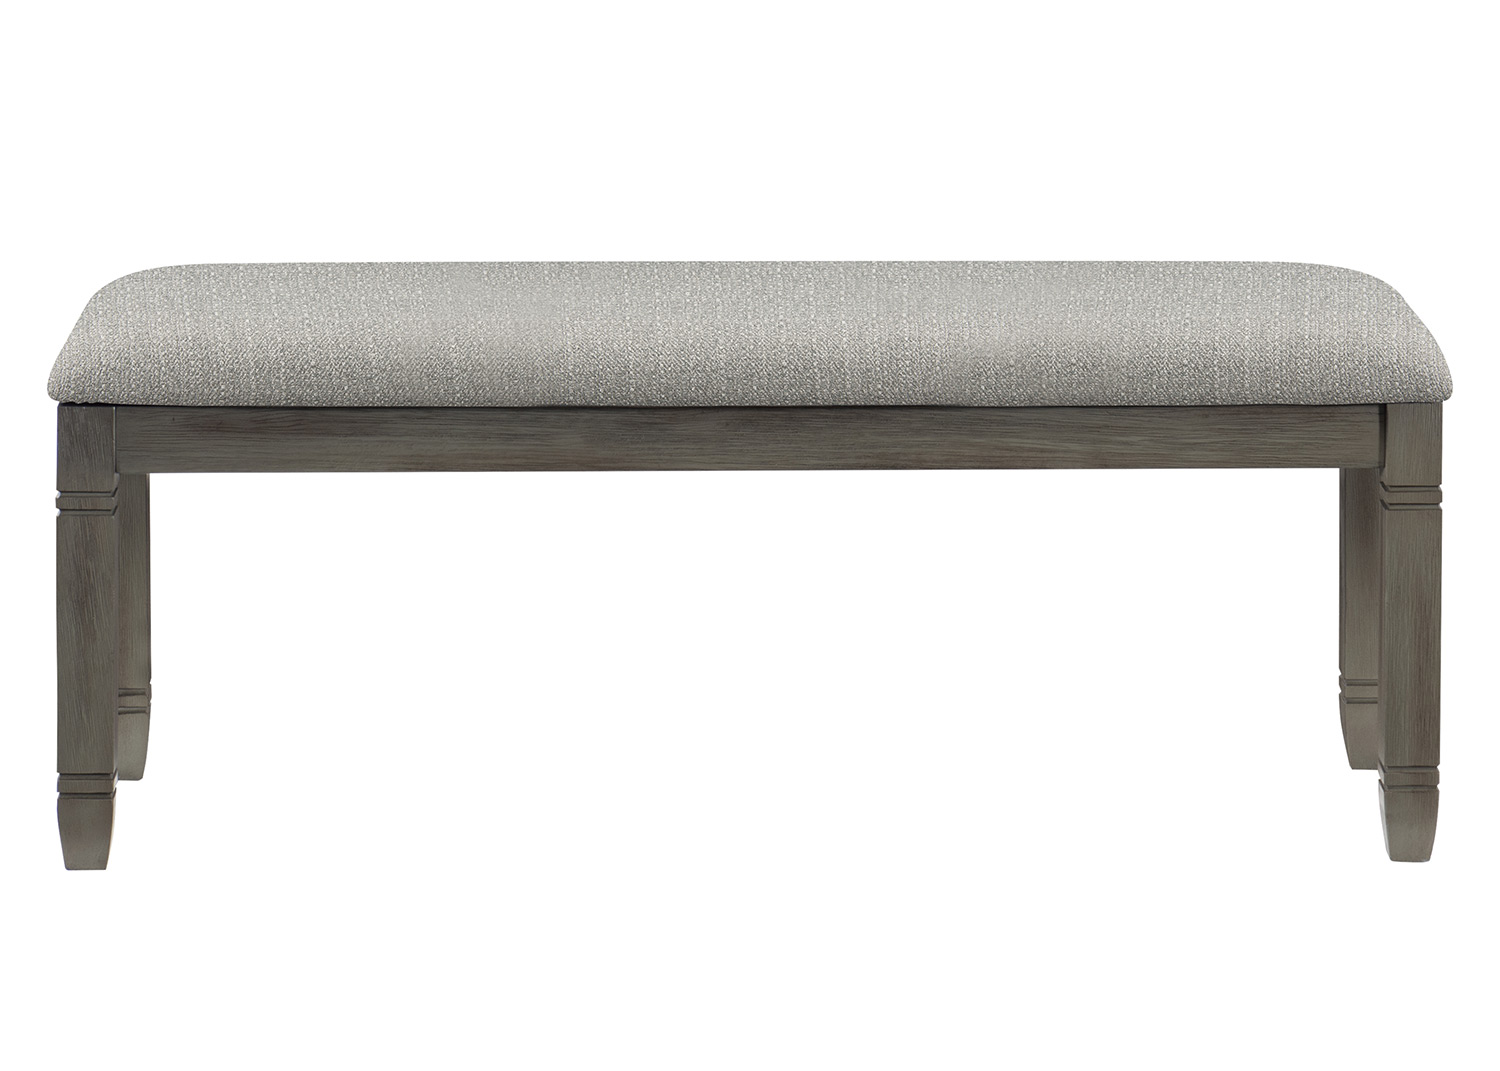 Homelegance Granby Bench - Antique Gray and Coffee